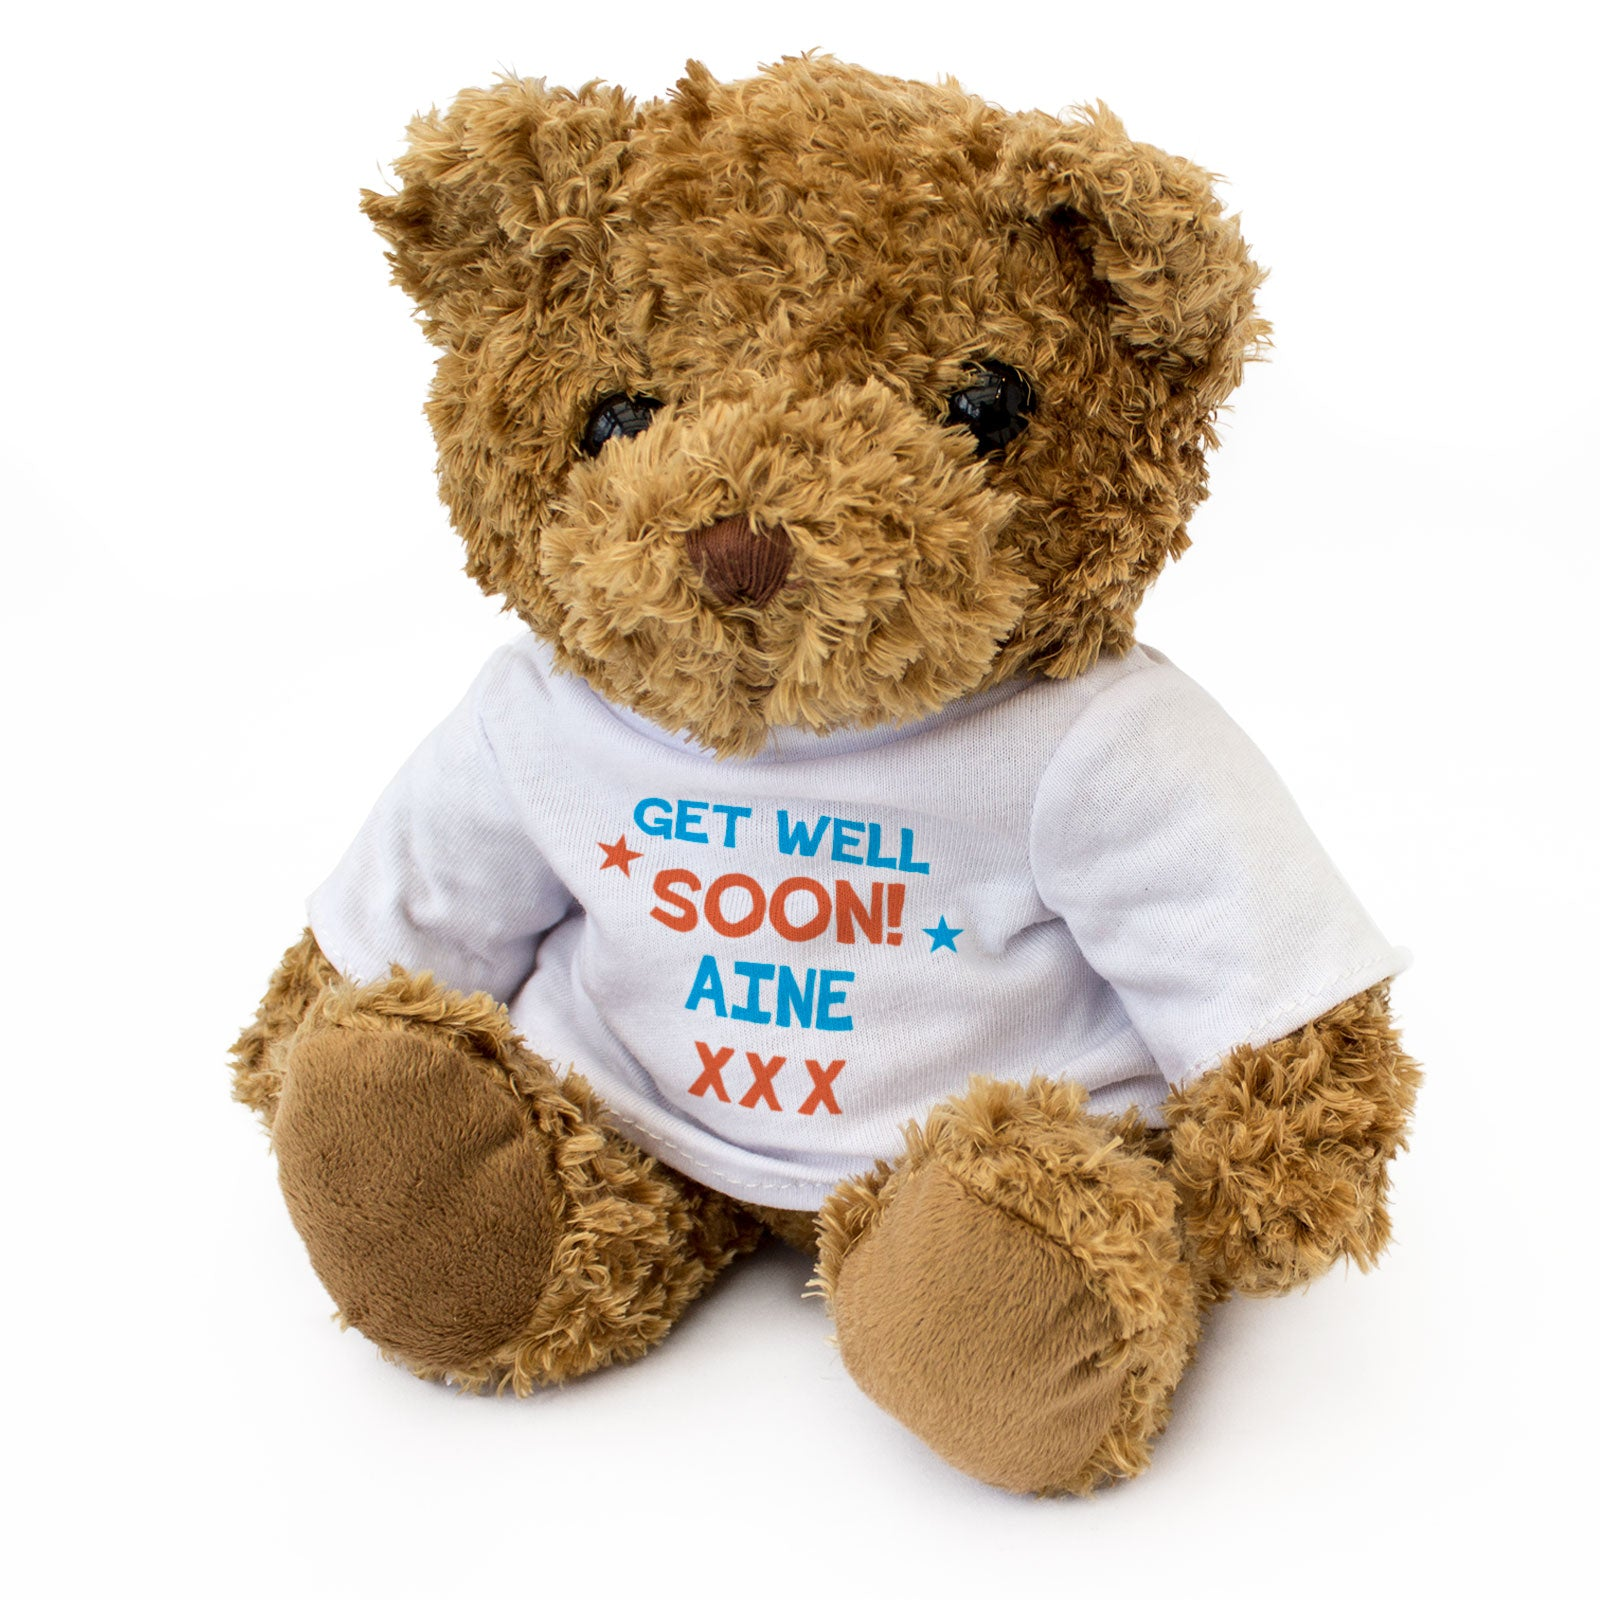 Get Well Soon Aine - Teddy Bear